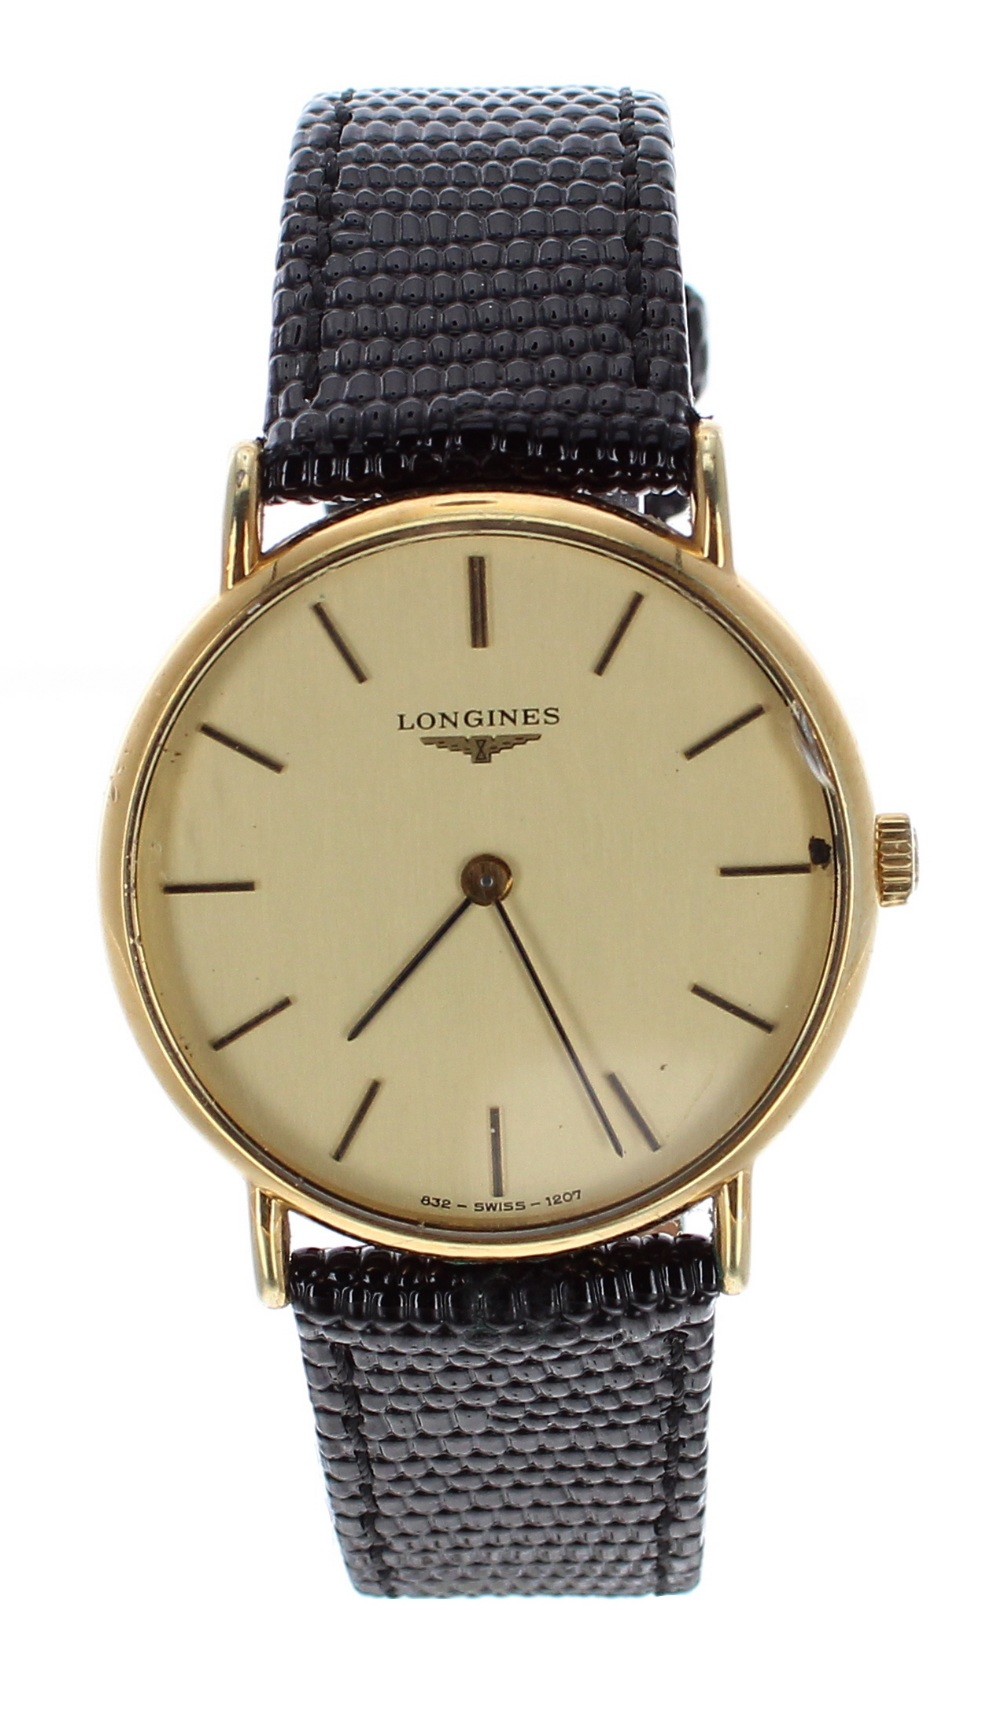 Lot 48 - Longines gold plated and stainless steel gentleman's wristwatch, case no. 20196938, circular